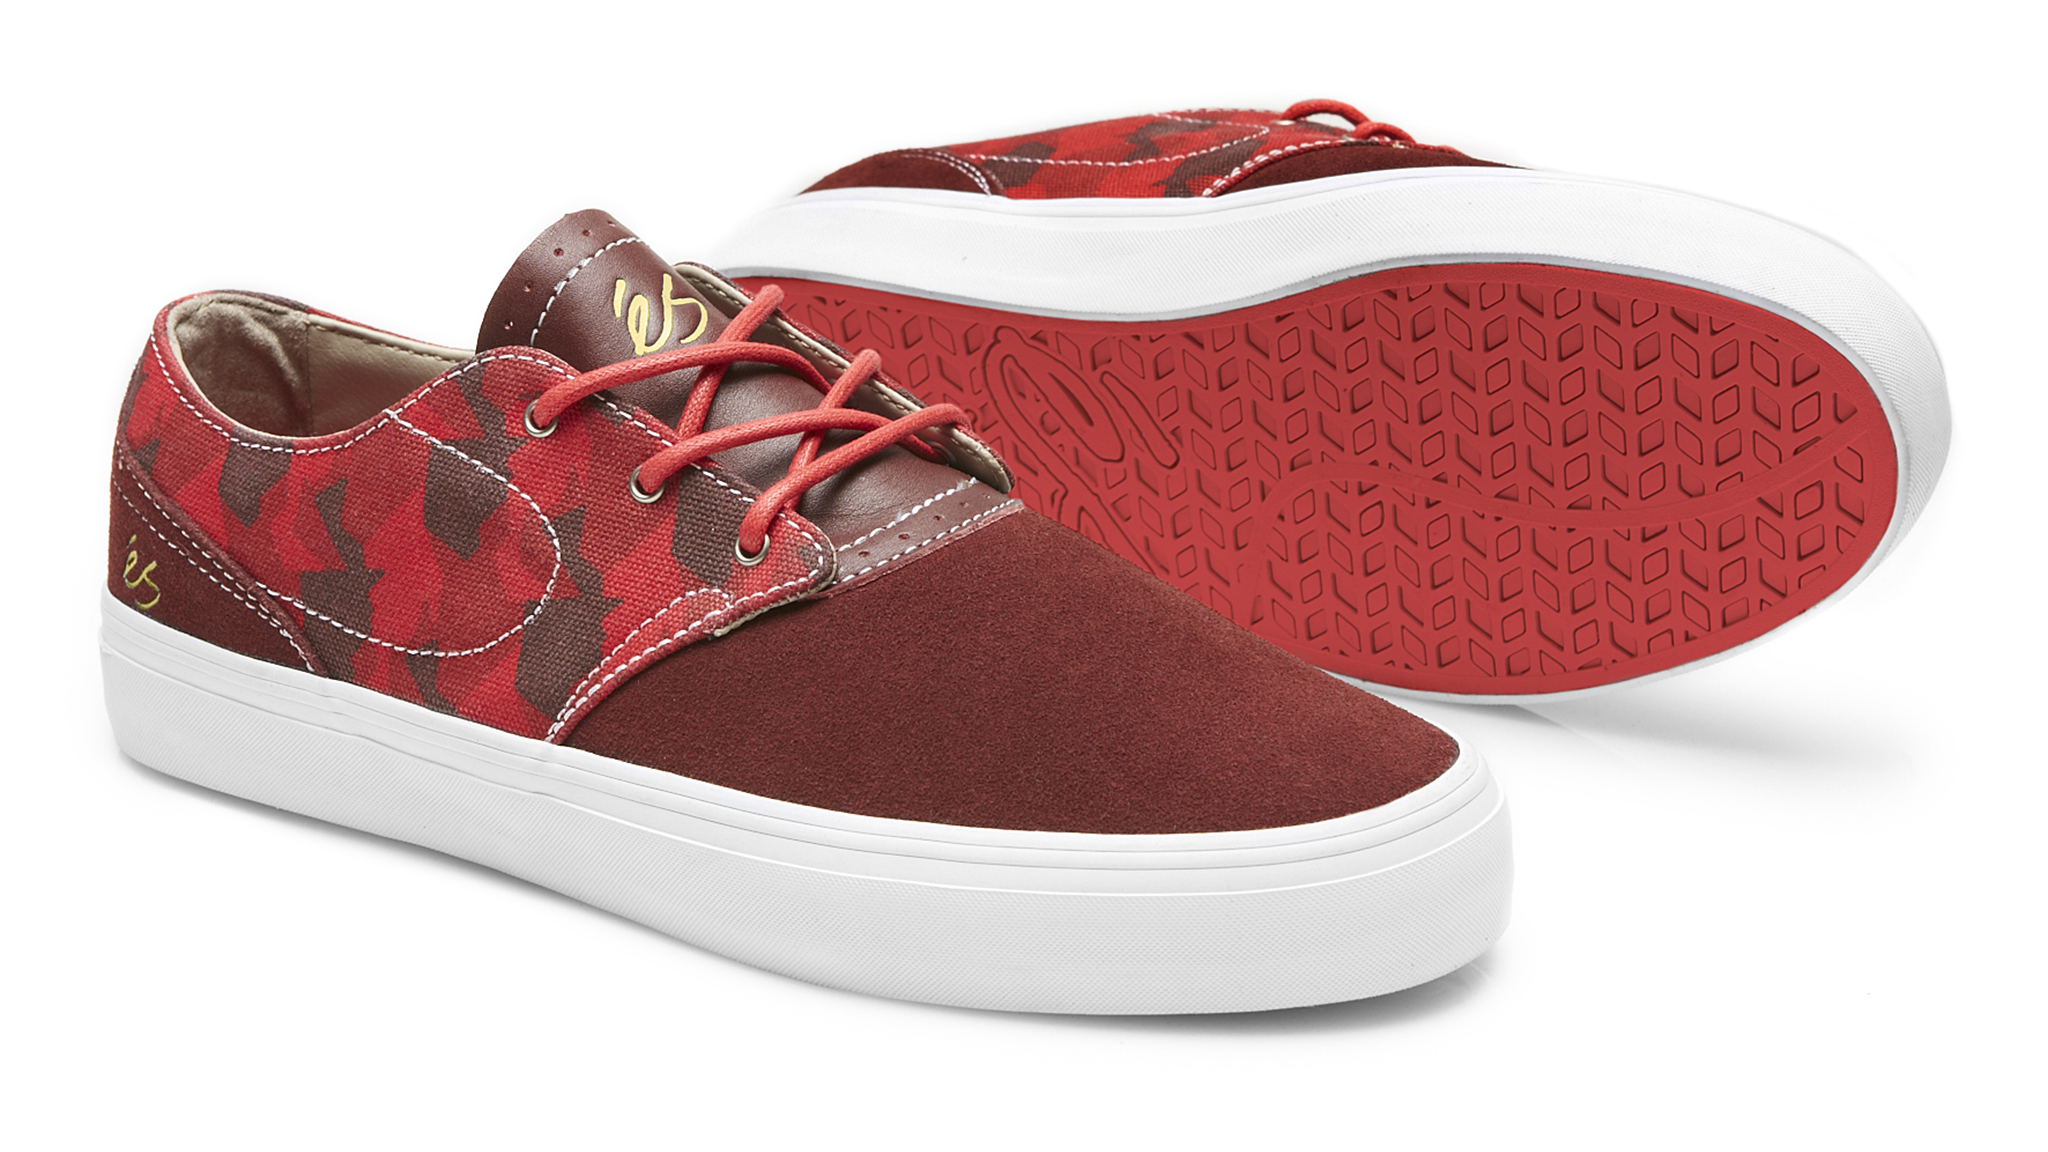 The Accent model in red from S footwear.